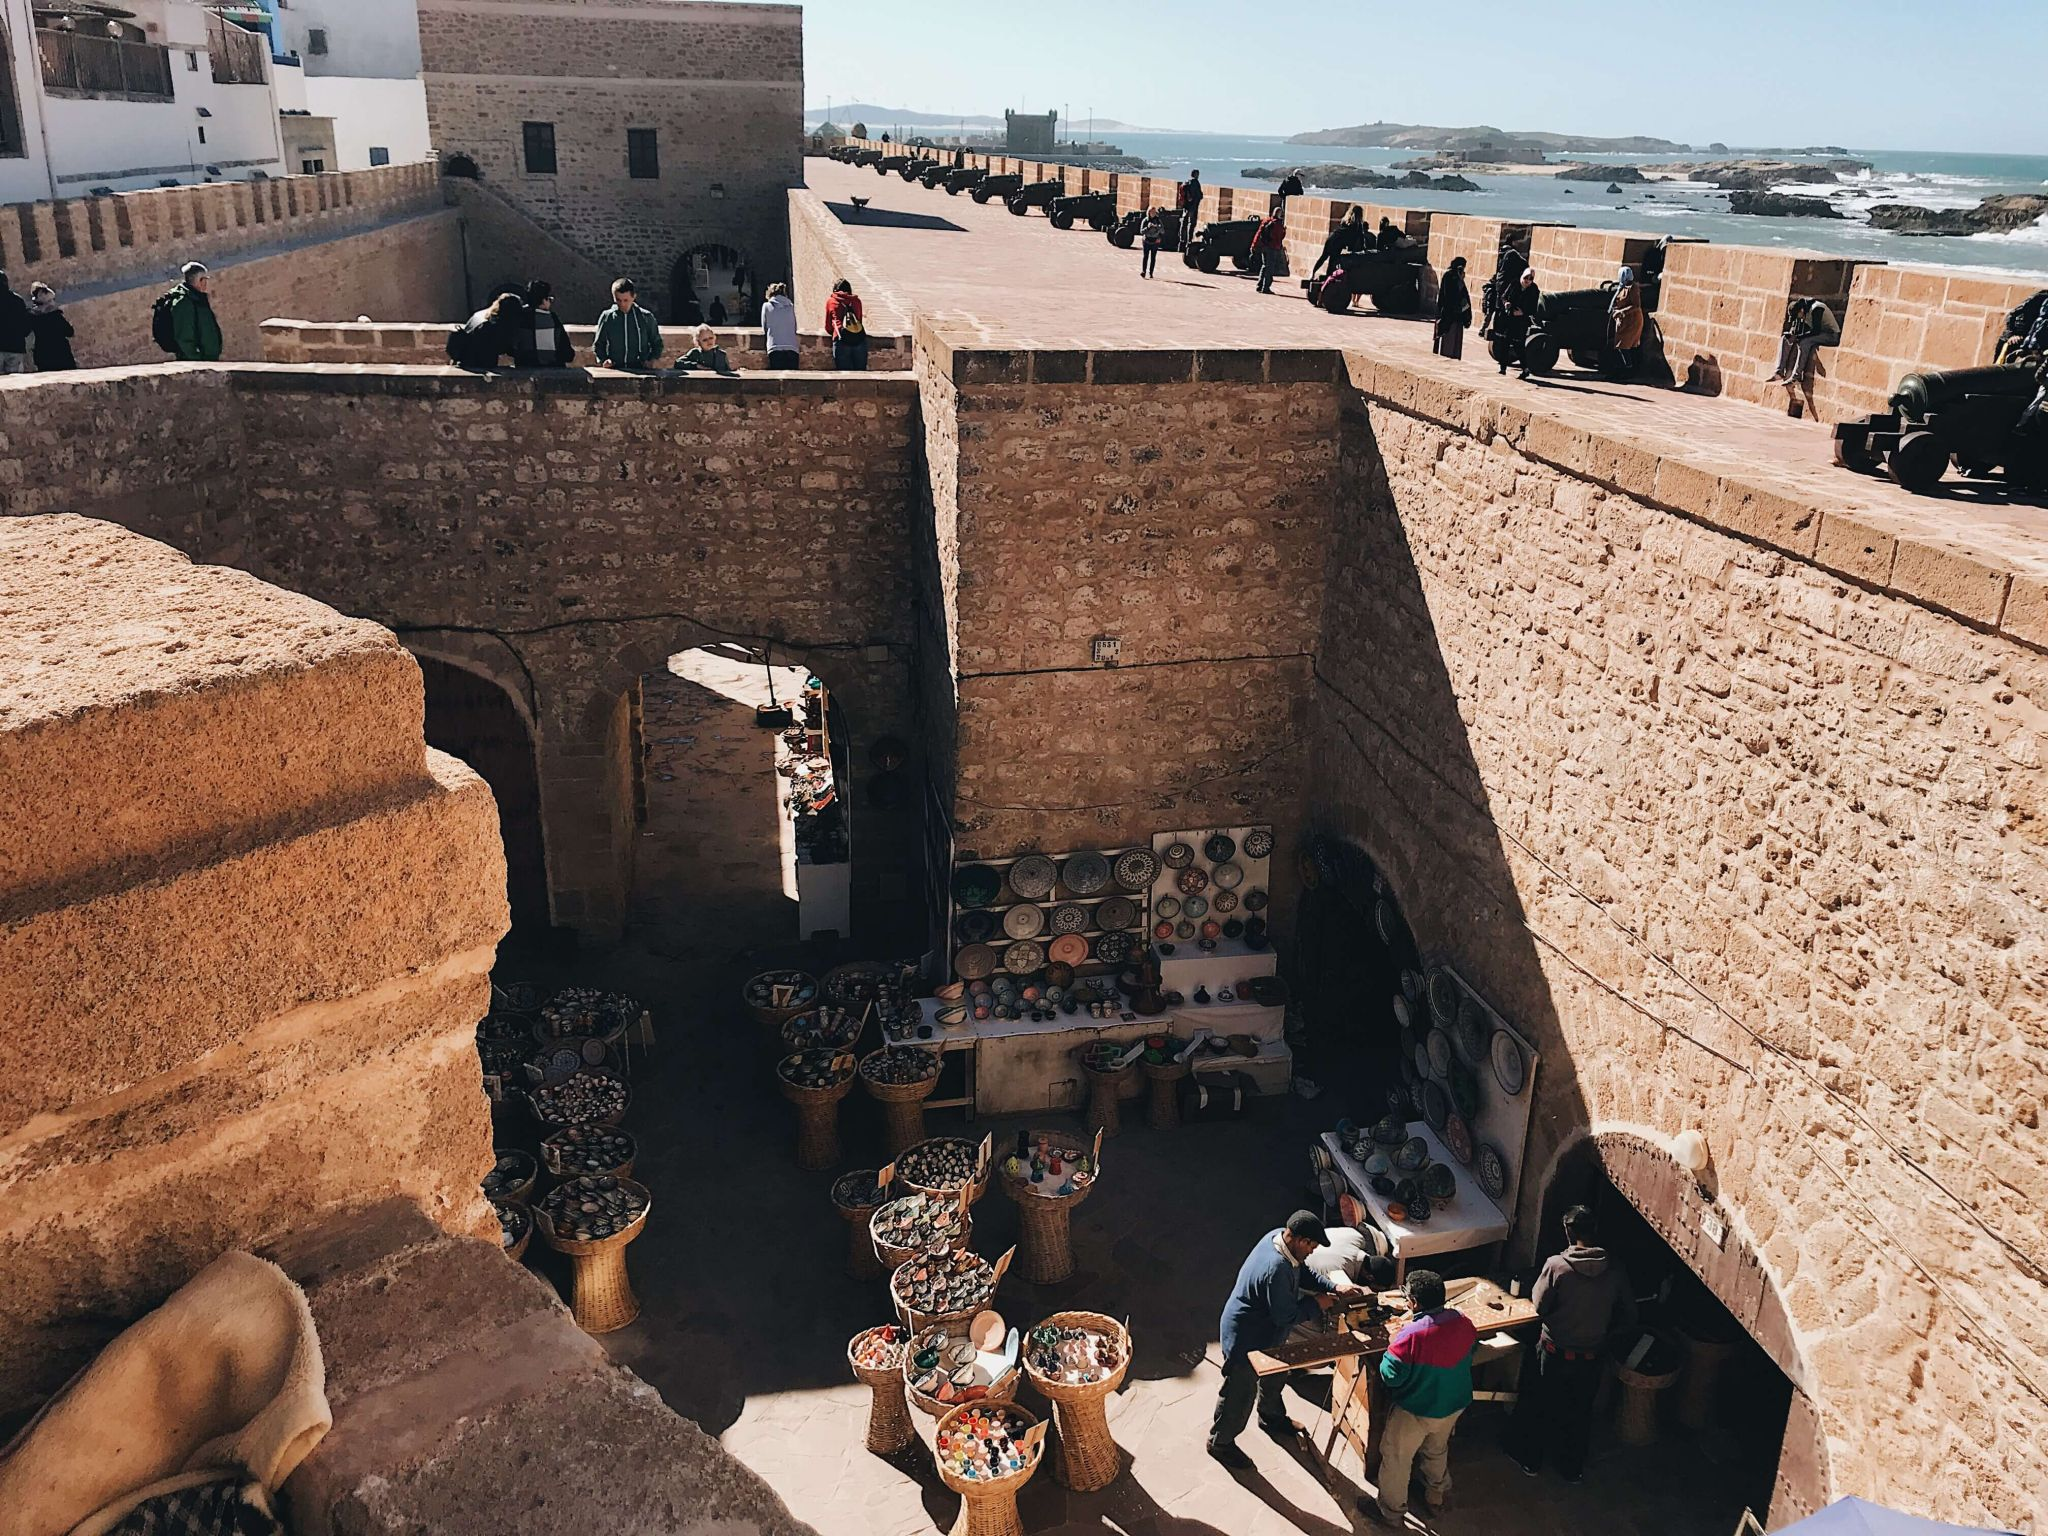 Essaouira as astapors walk of punishment